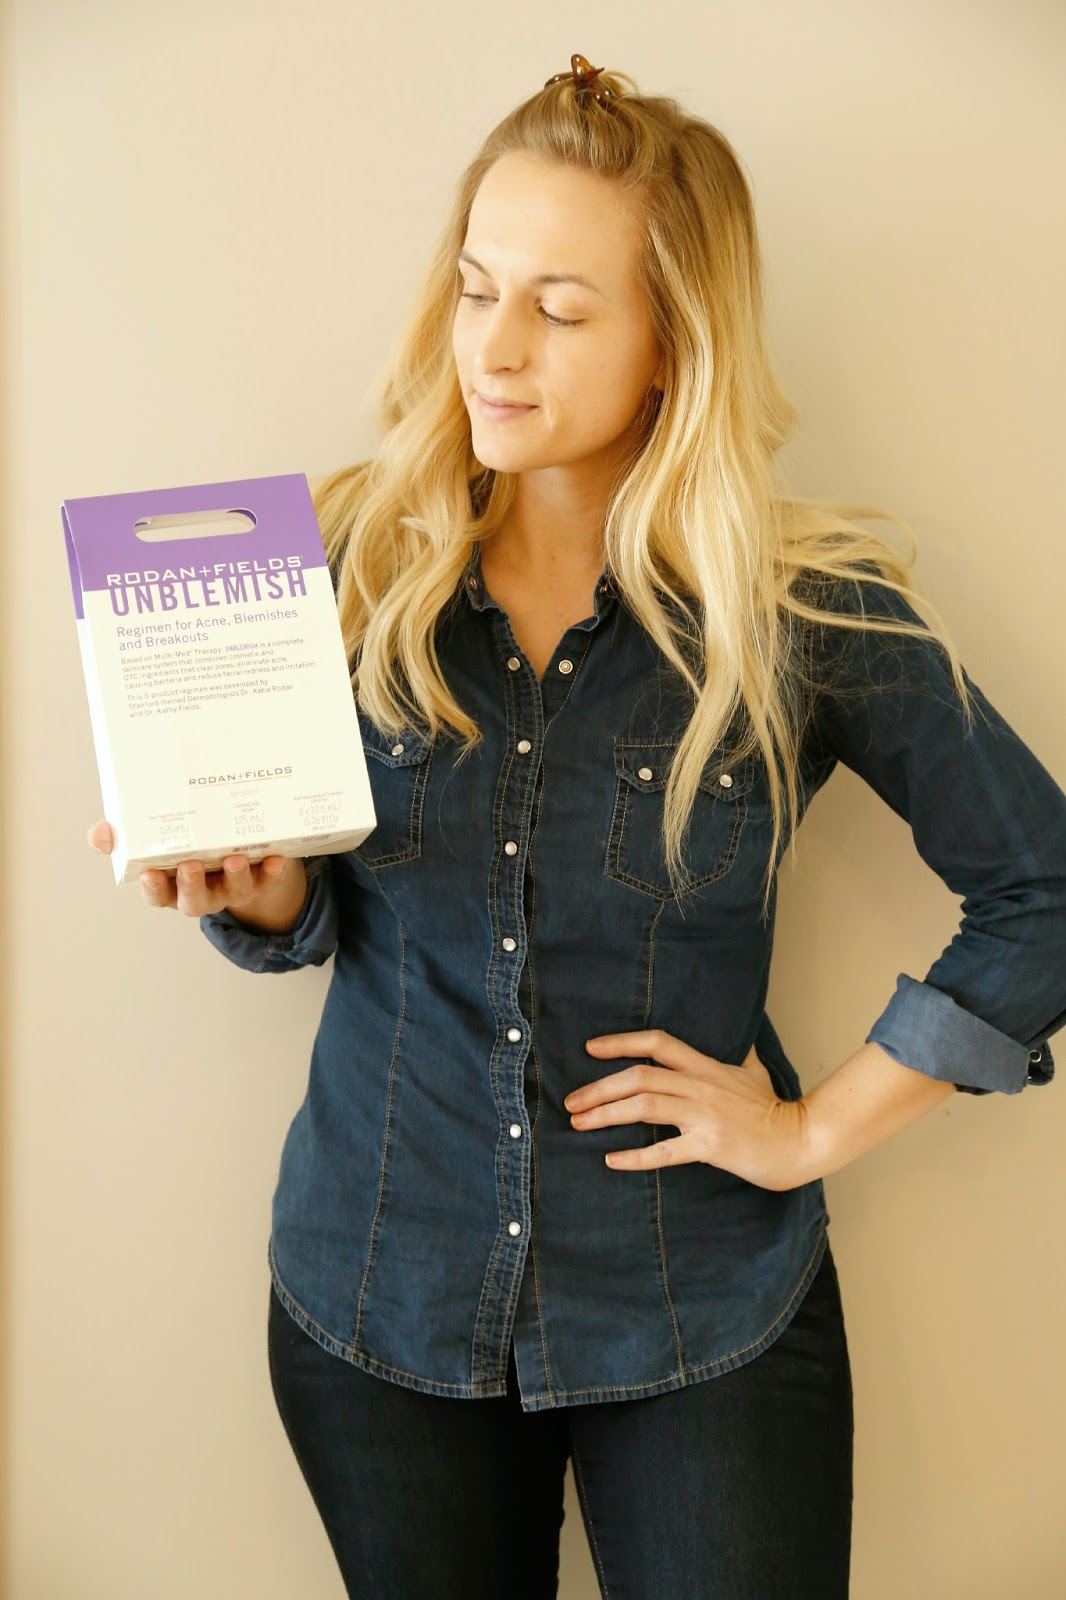 rodan-and-fields-unblemish-review